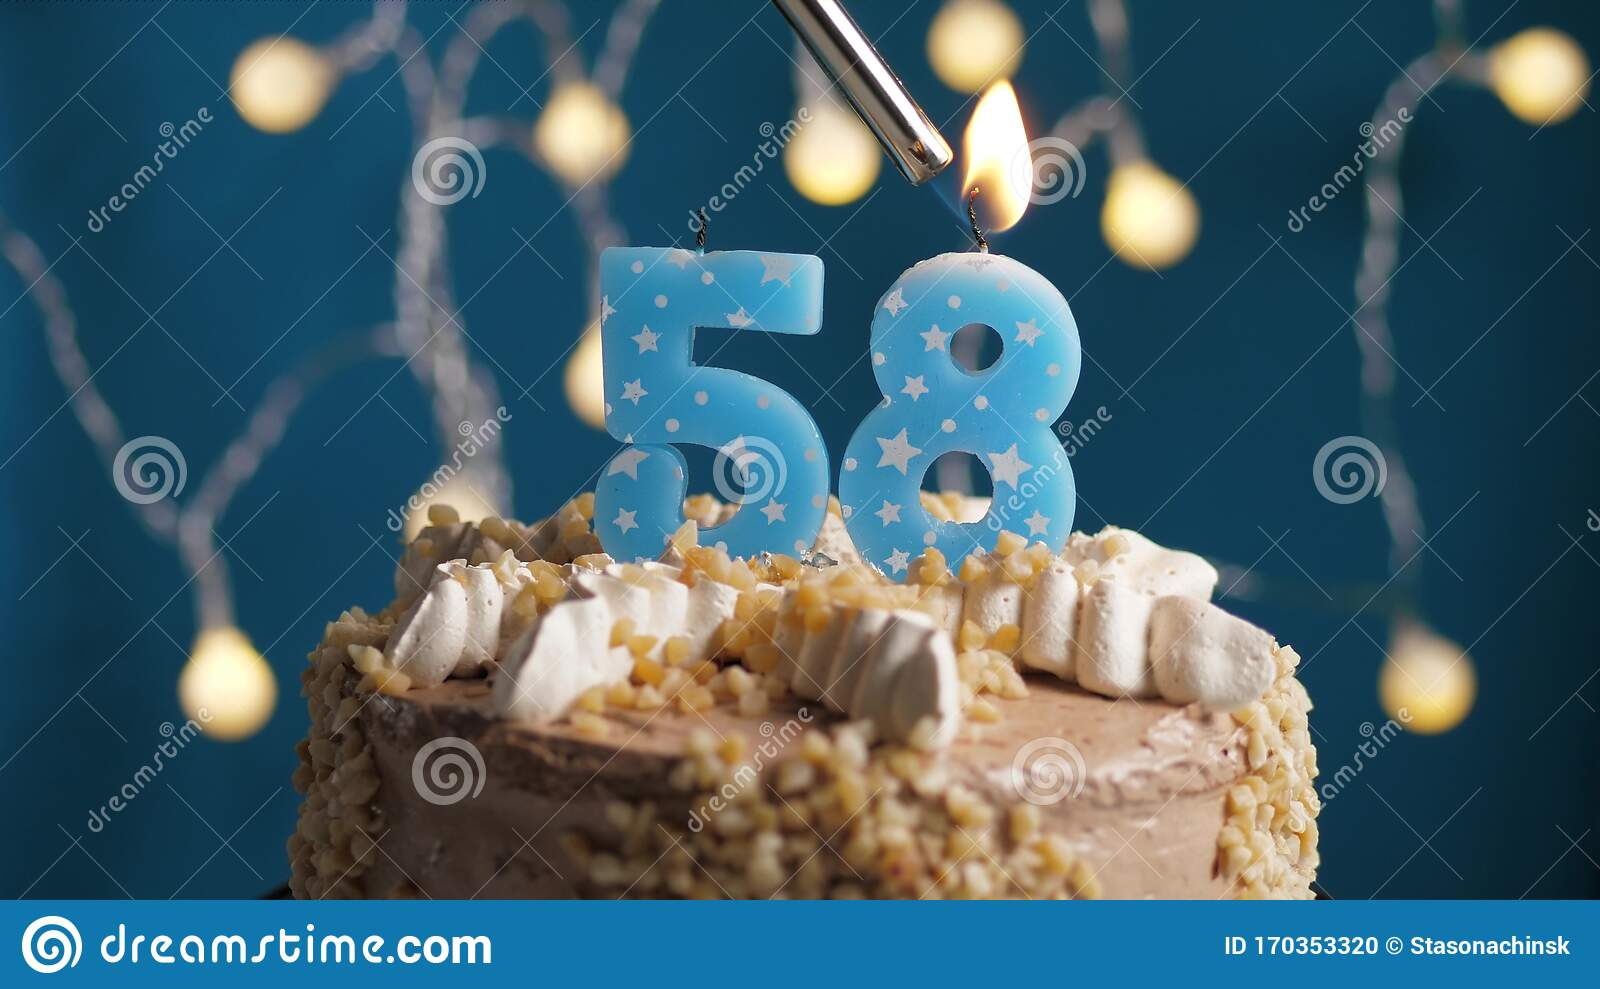 Pleasing Birthday Cake With 58 Number Candle On Blue Backgraund Candles Birthday Cards Printable Nowaargucafe Filternl